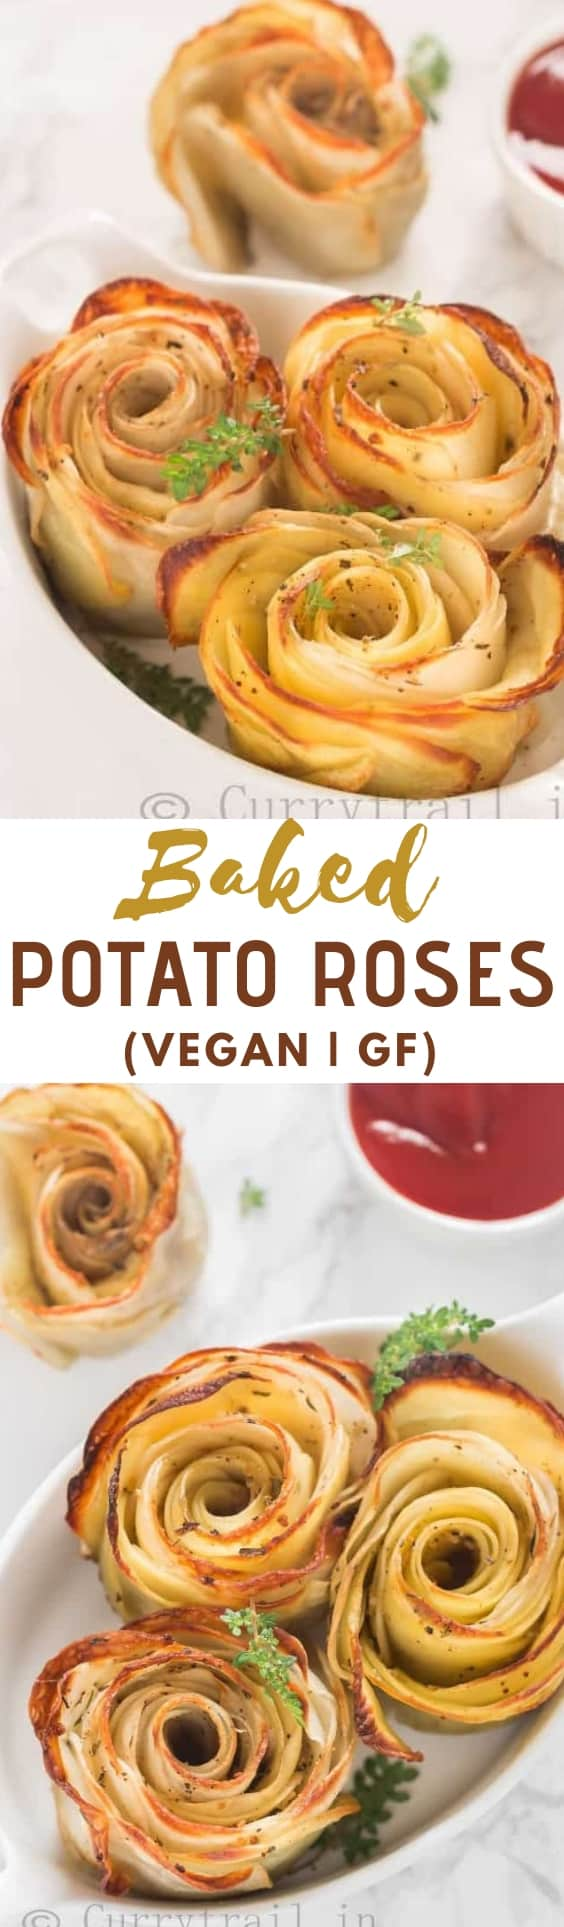 baked potato roses served in white oval ceramic dish with sauce on side with text overlay